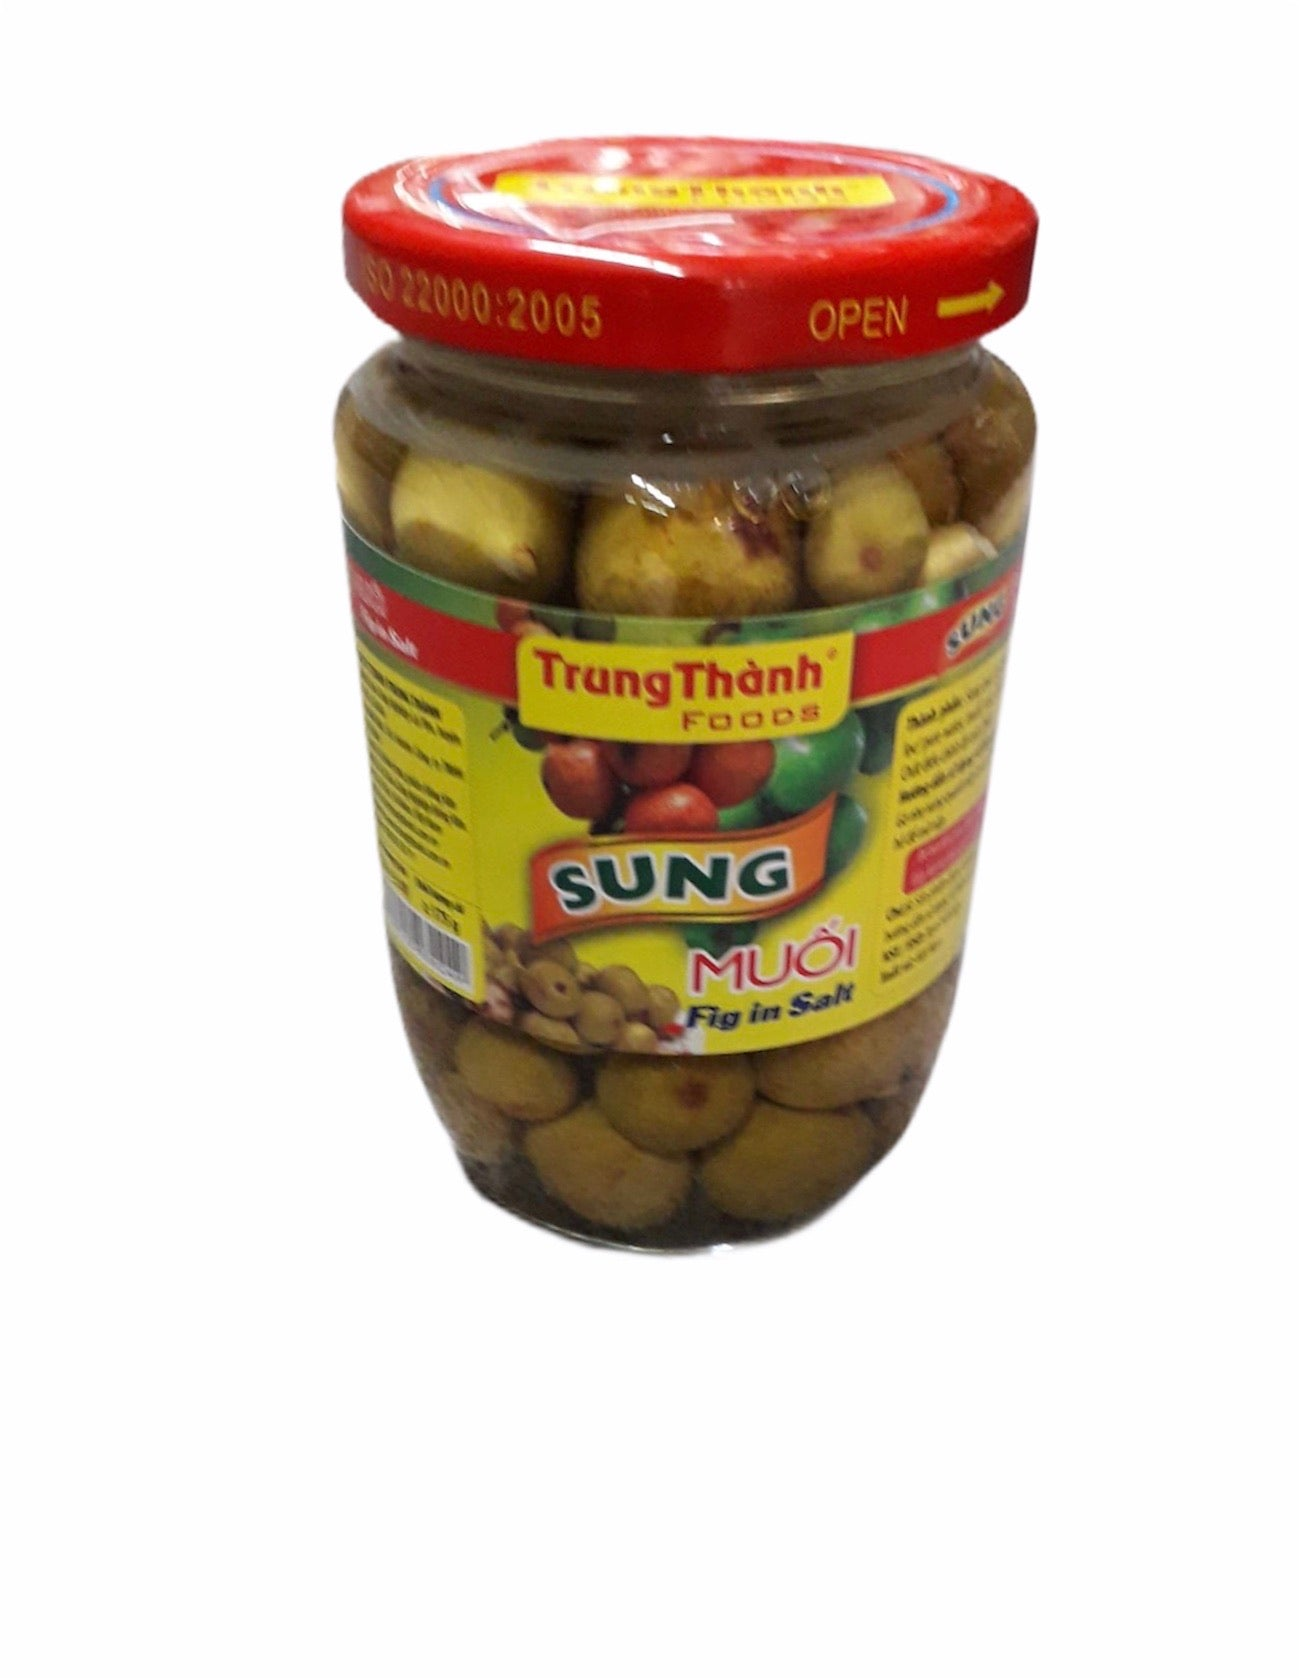 Feige in Salz Trung Thanh 500g- Sung muối Trung Thành 500g